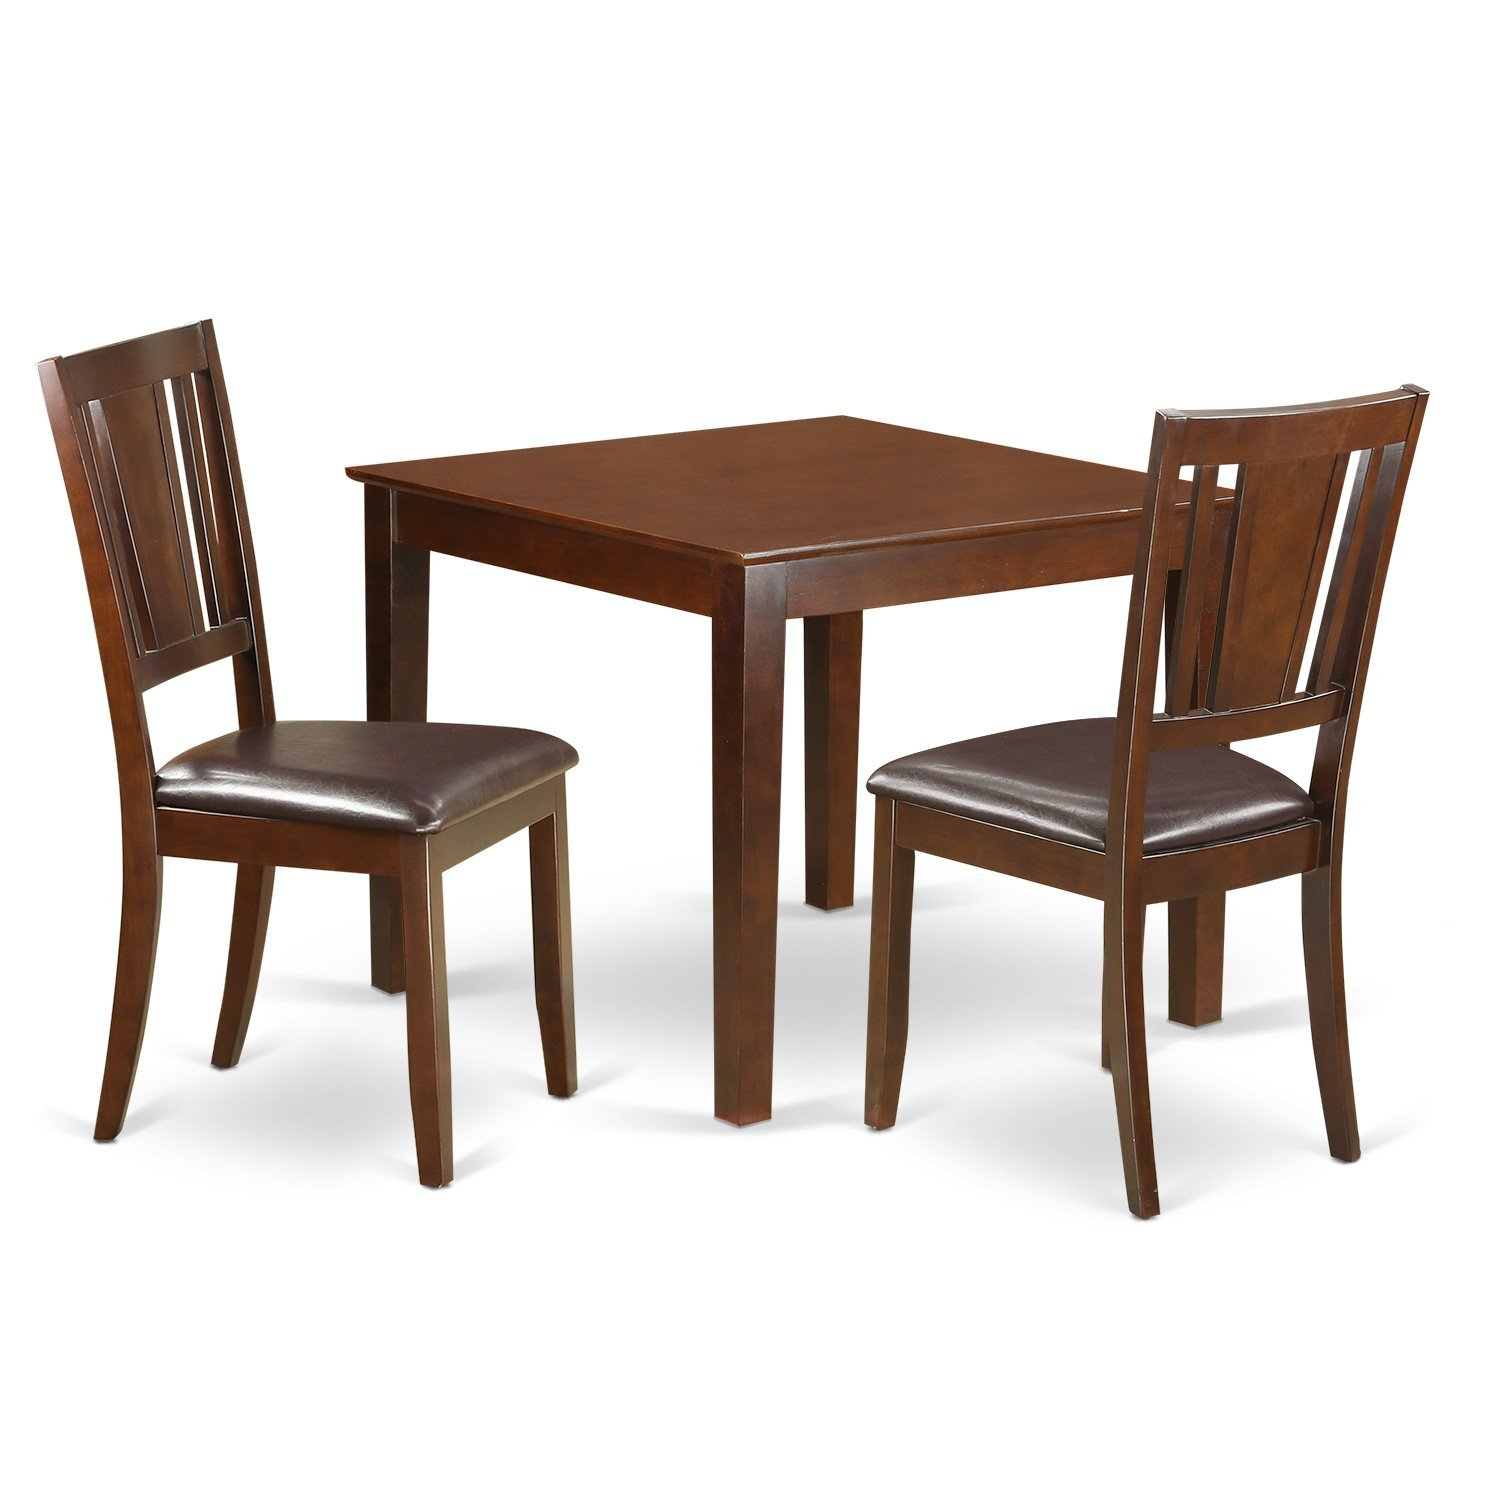 East West Furniture OXDU3-MAH-LC 3Piece Small Kitchen Table Set with One Oxford Dining Table & 2 Dining Chairs in Mahogany Finish